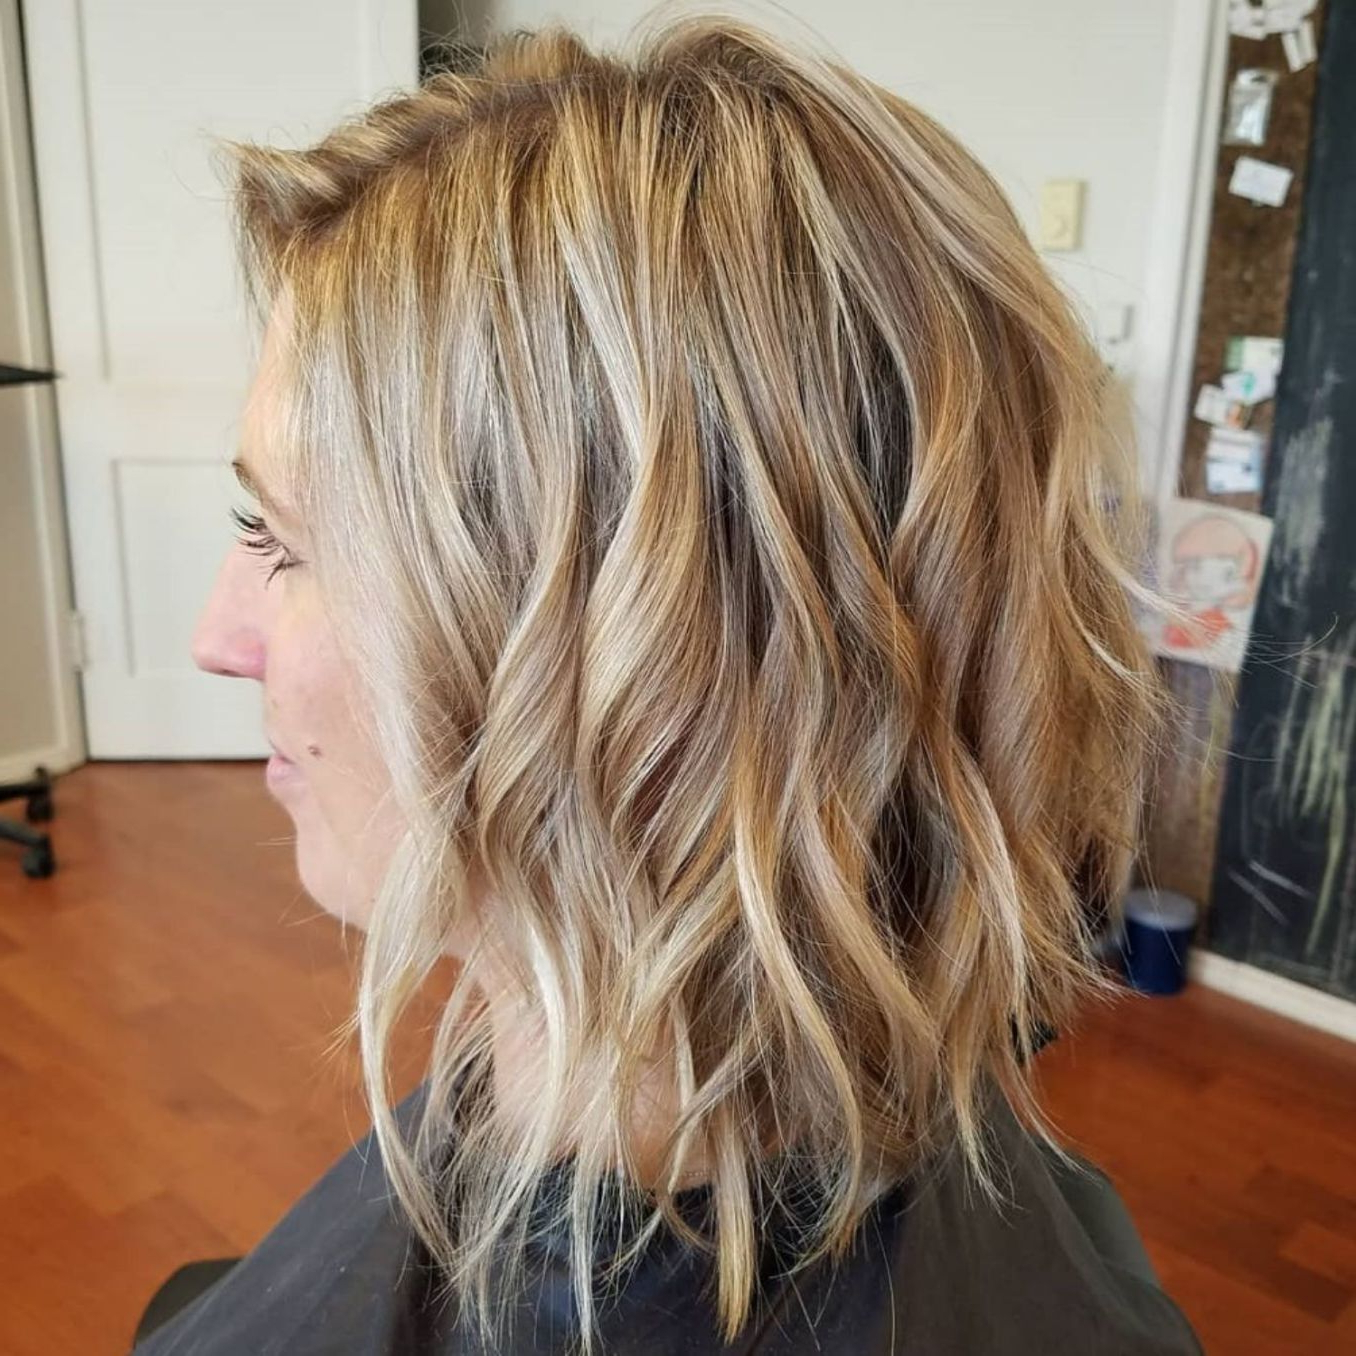 Most Up To Date Medium Golden Bronde Shag Hairstyles Inside 50 Best Variations Of A Medium Shag Haircut For Your Distinctive (View 3 of 20)